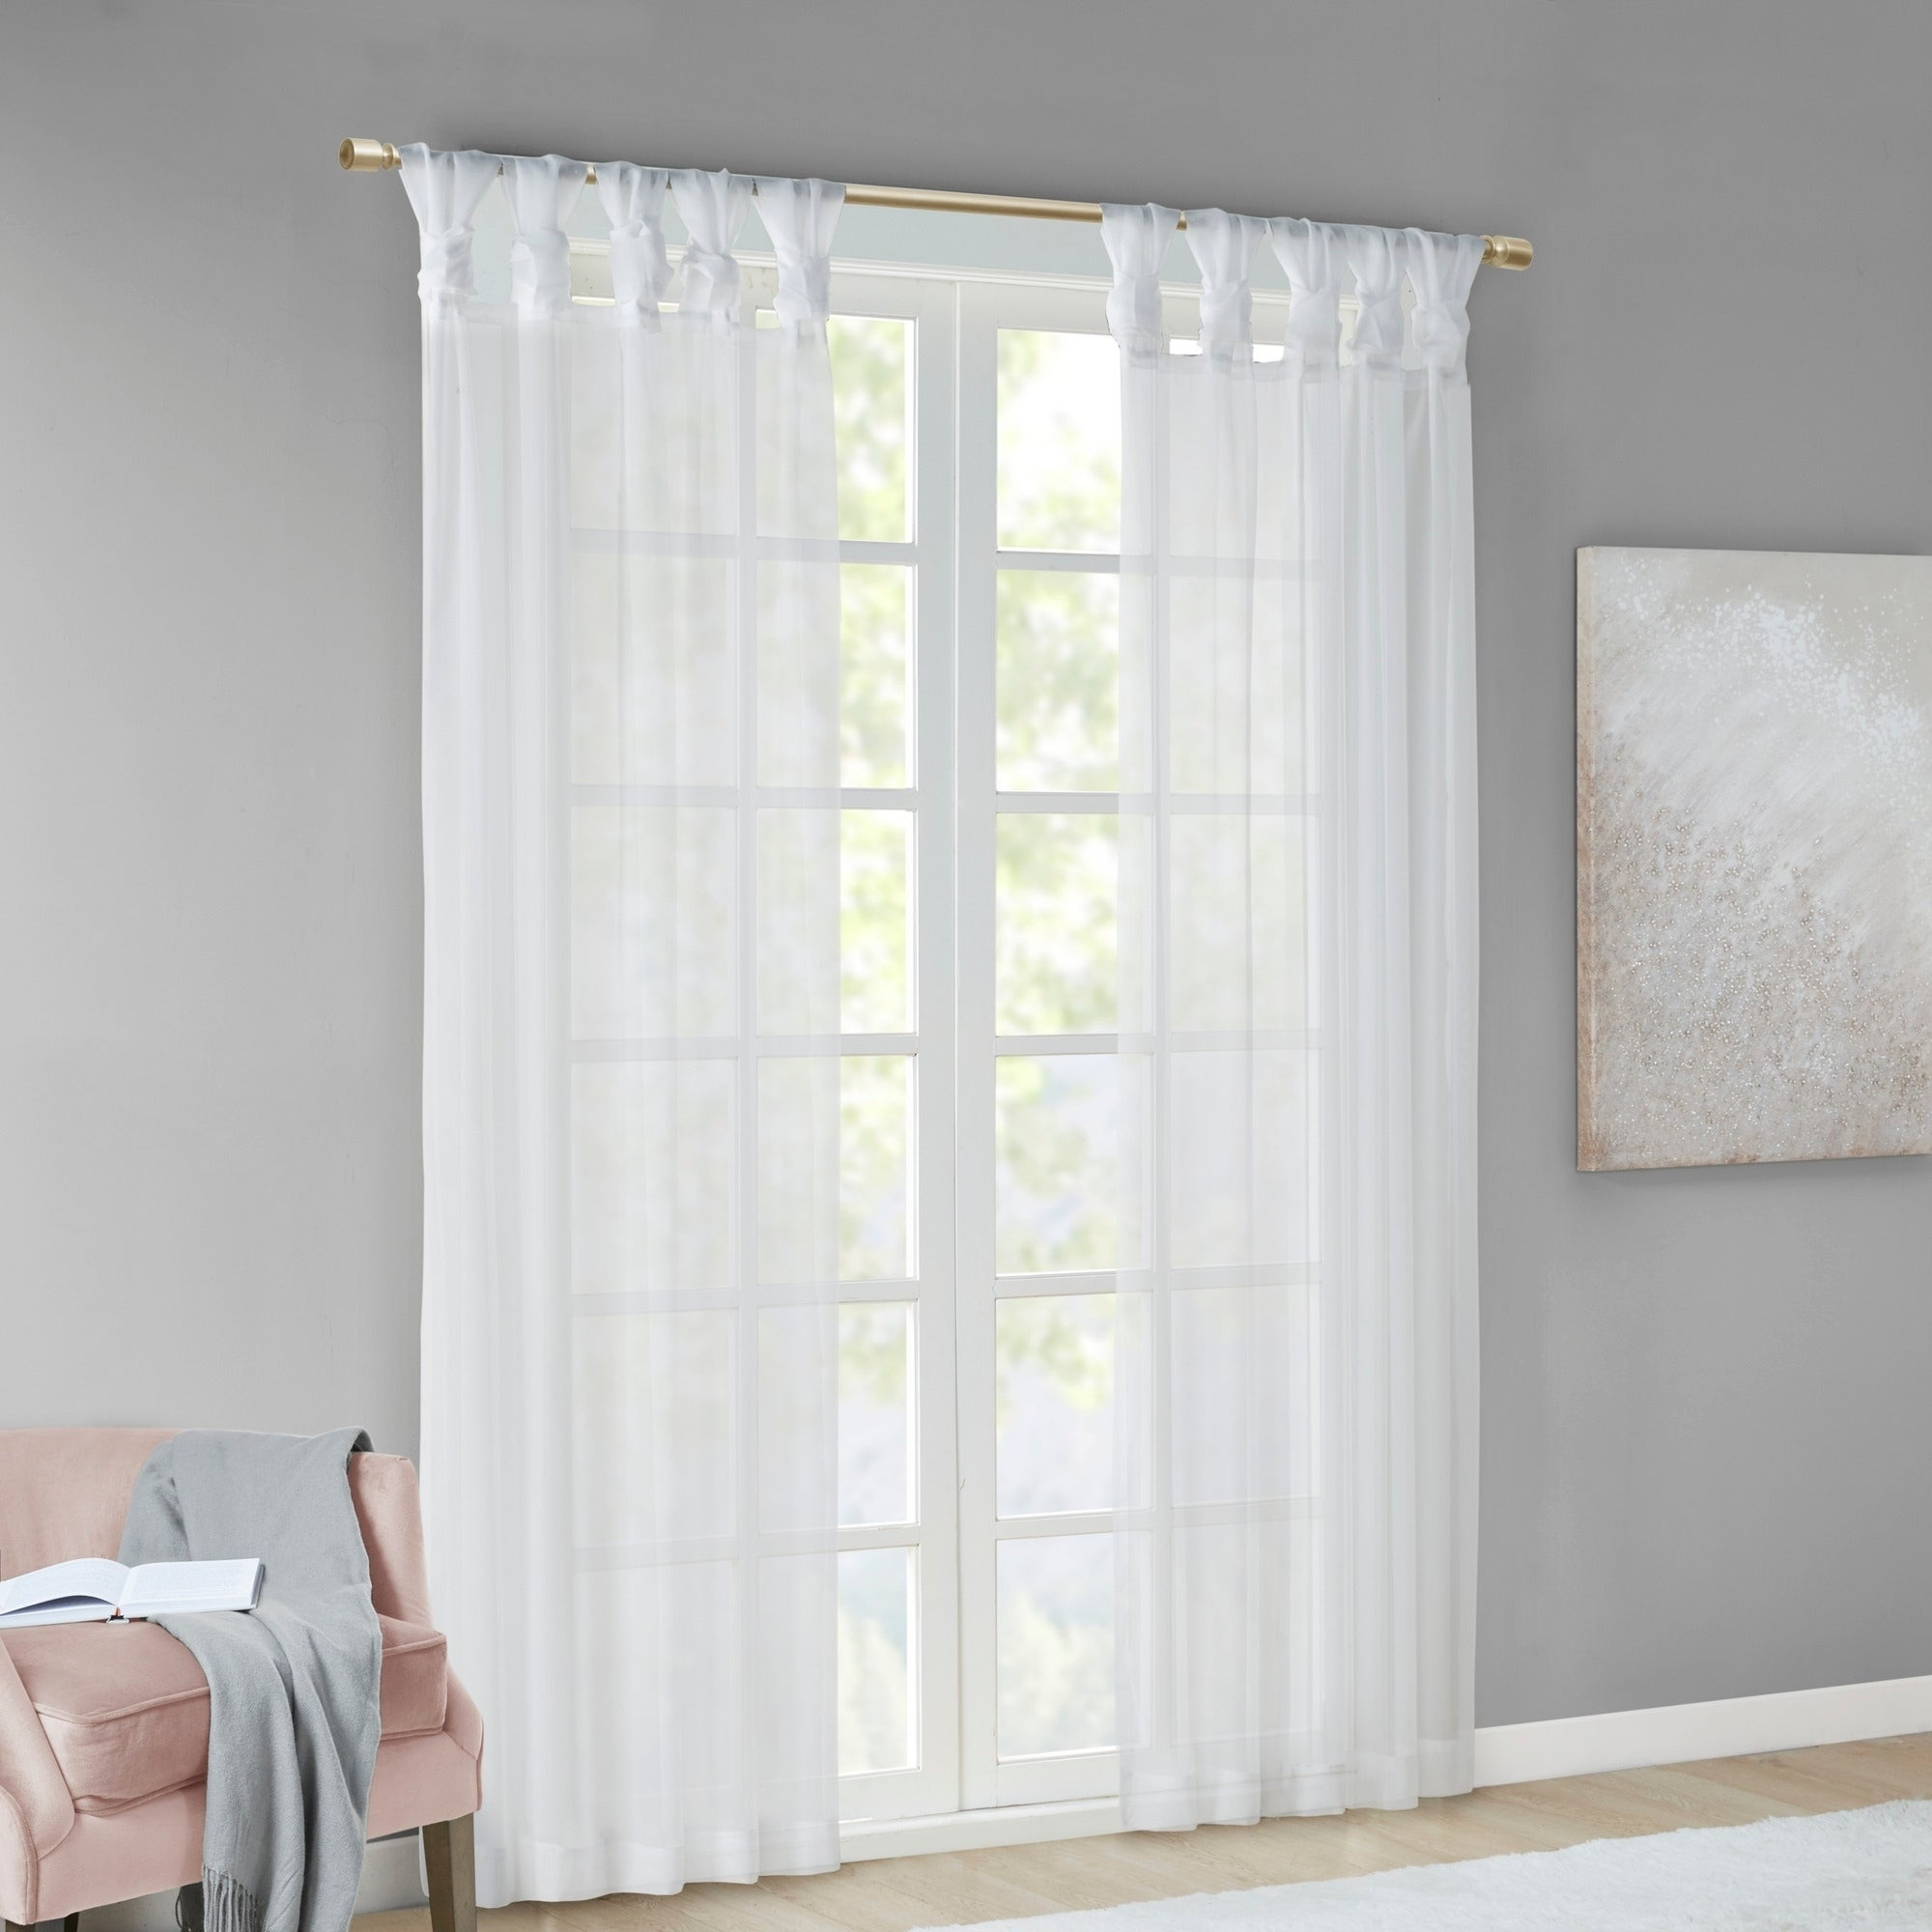 Madison Park Elowen White Twist Tab Voile Sheer Curtain Panel Pair Regarding Elowen White Twist Tab Voile Sheer Curtain Panel Pairs (View 8 of 20)